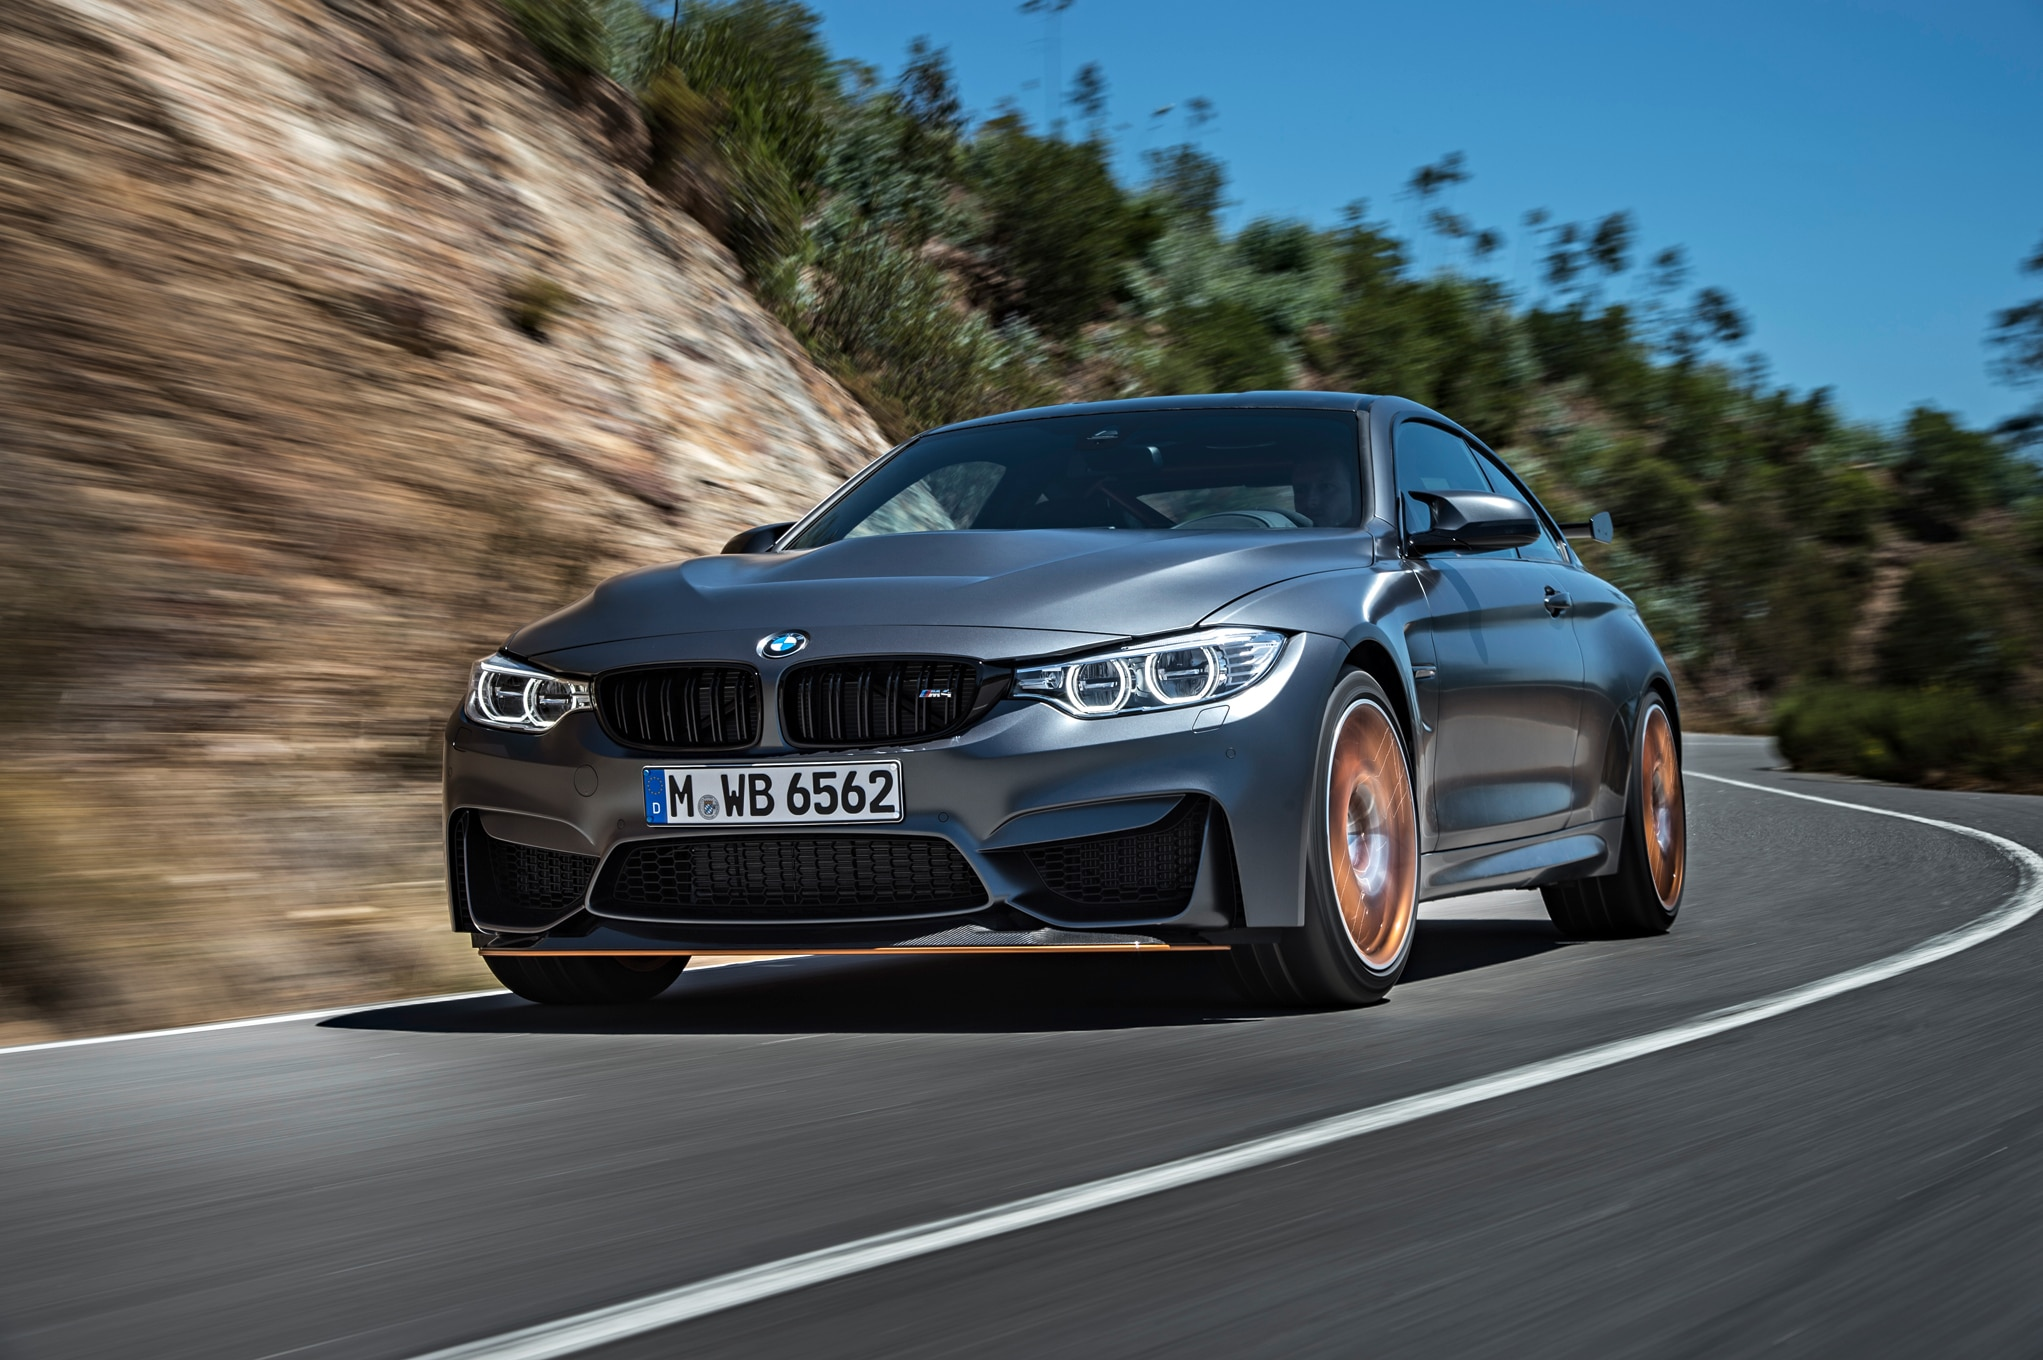 2016 BMW M4 GTS Front Three Quarter In Motion 07